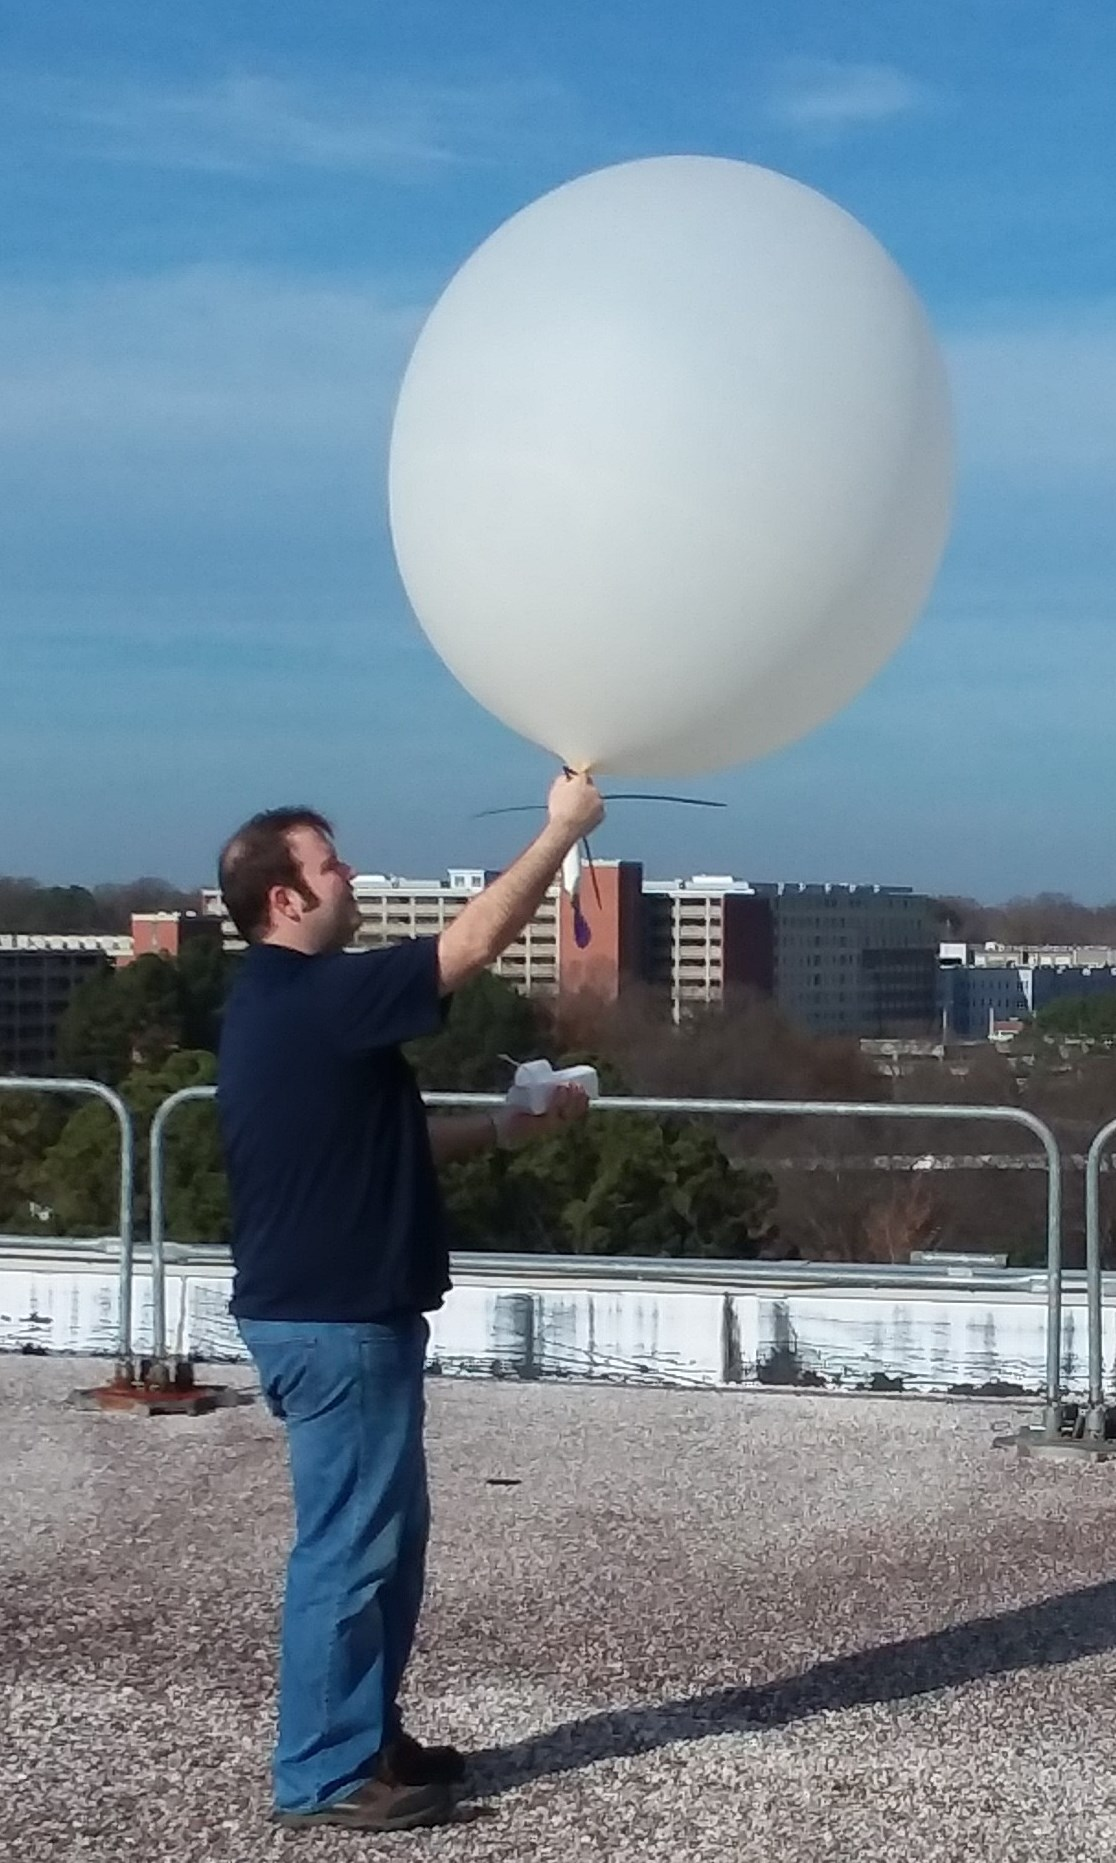 Joe an dradiosonde balloon